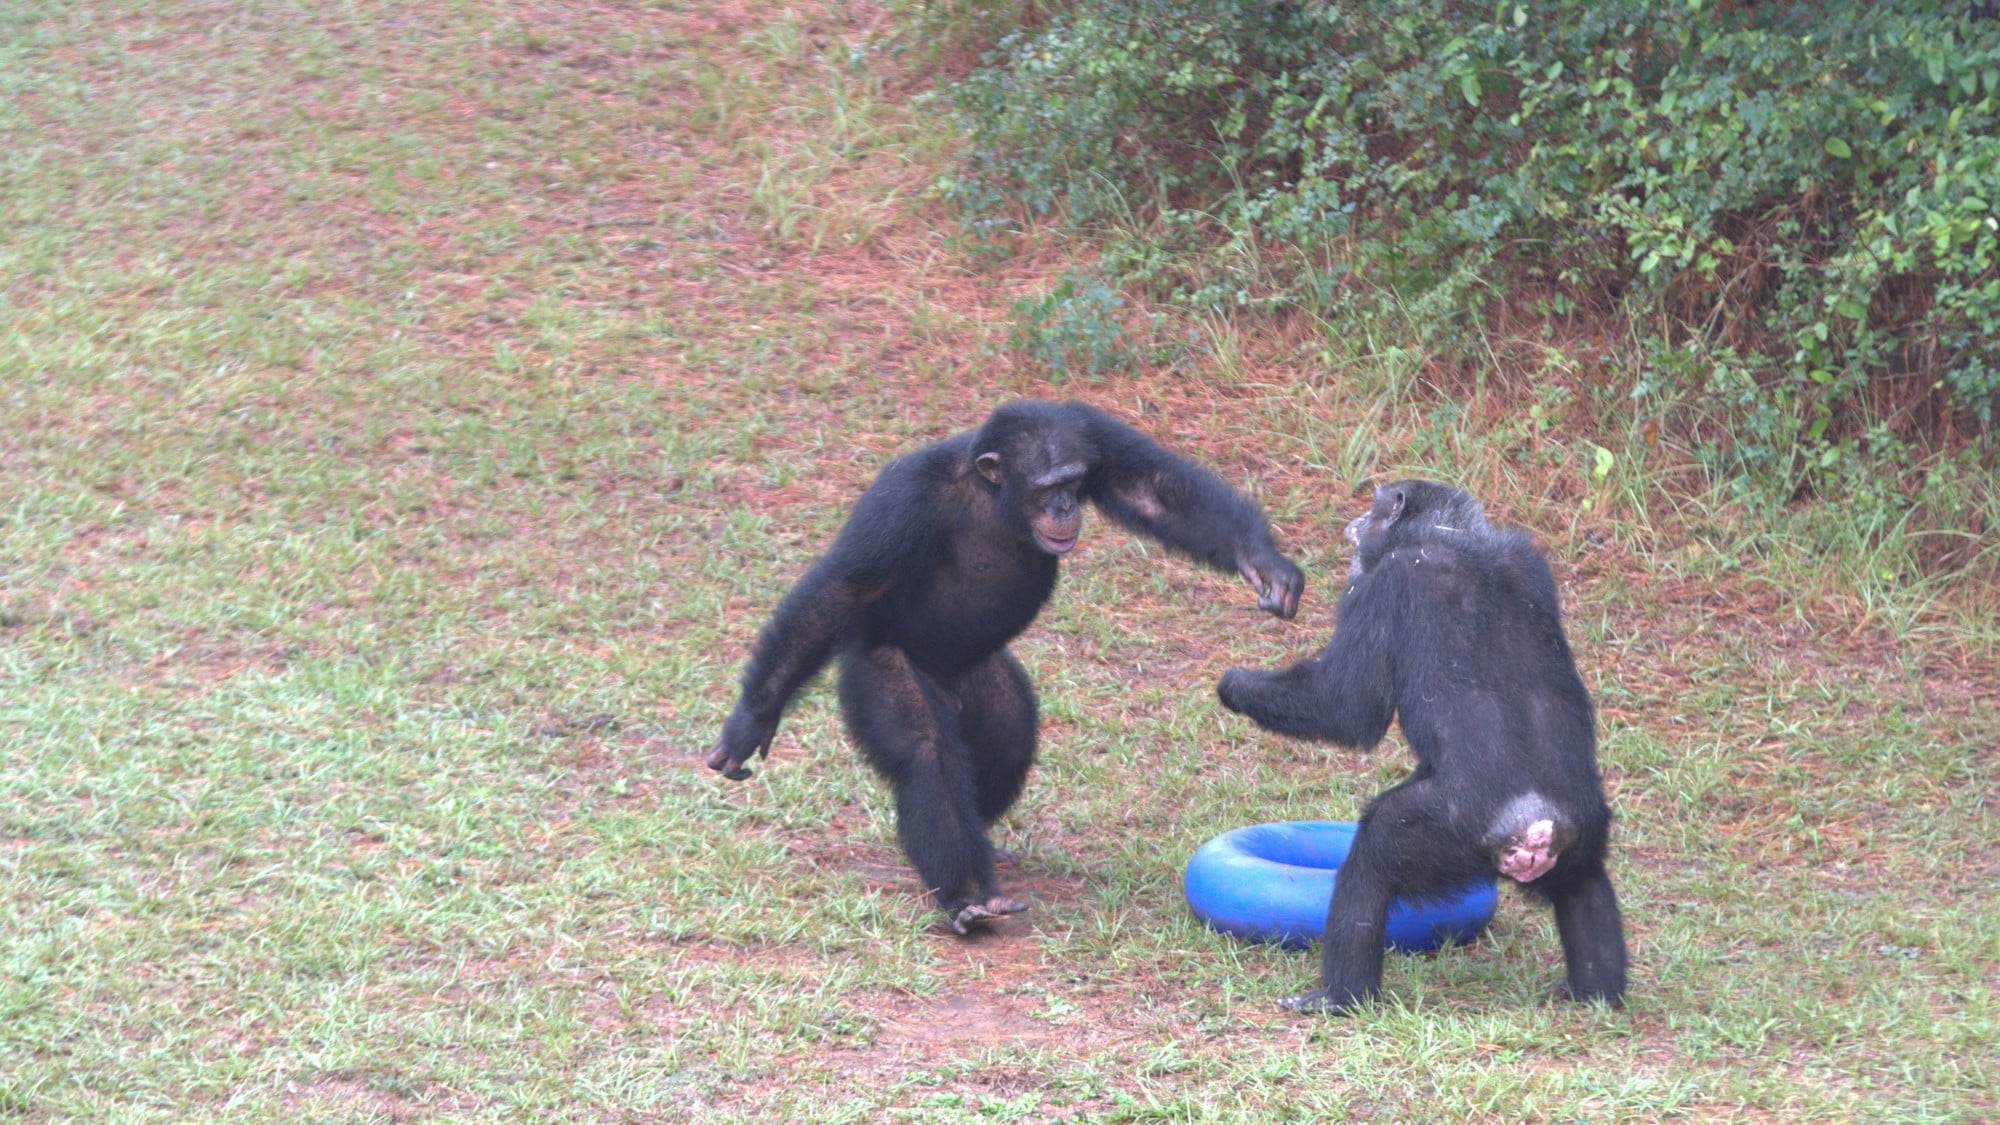 Jimmy Dean standing bi-pedally making his way towards another chimp, asserting his dominance. Sara Soda's group. (Nicholas Chapoy)